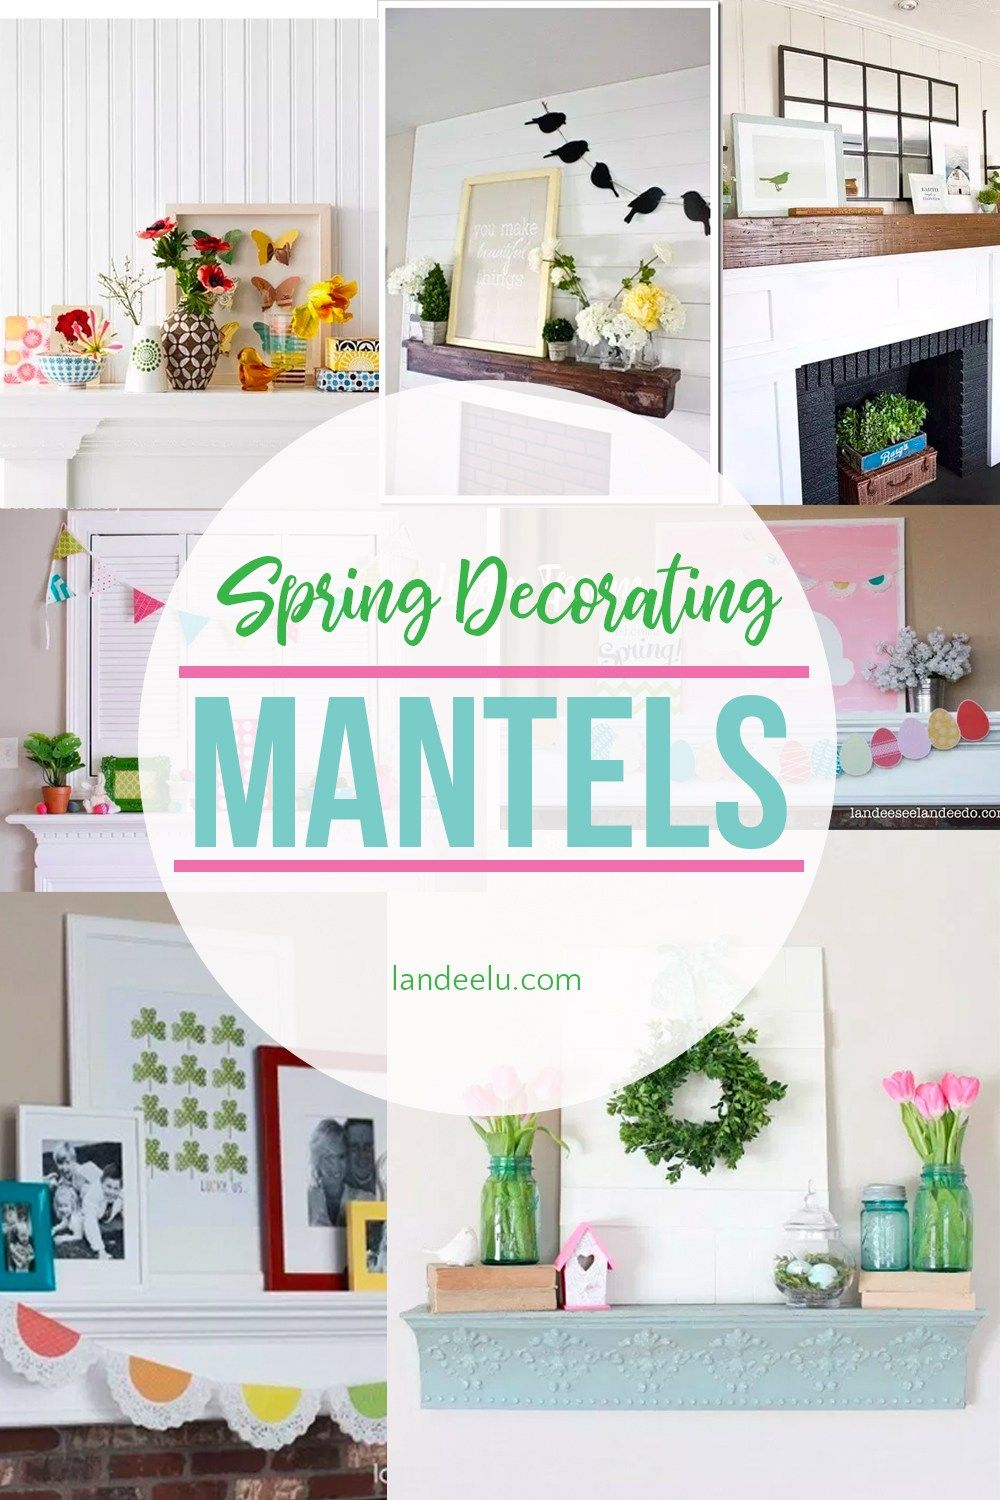 Spring Decorating Mantels Roundup Spring Decor Decor Project